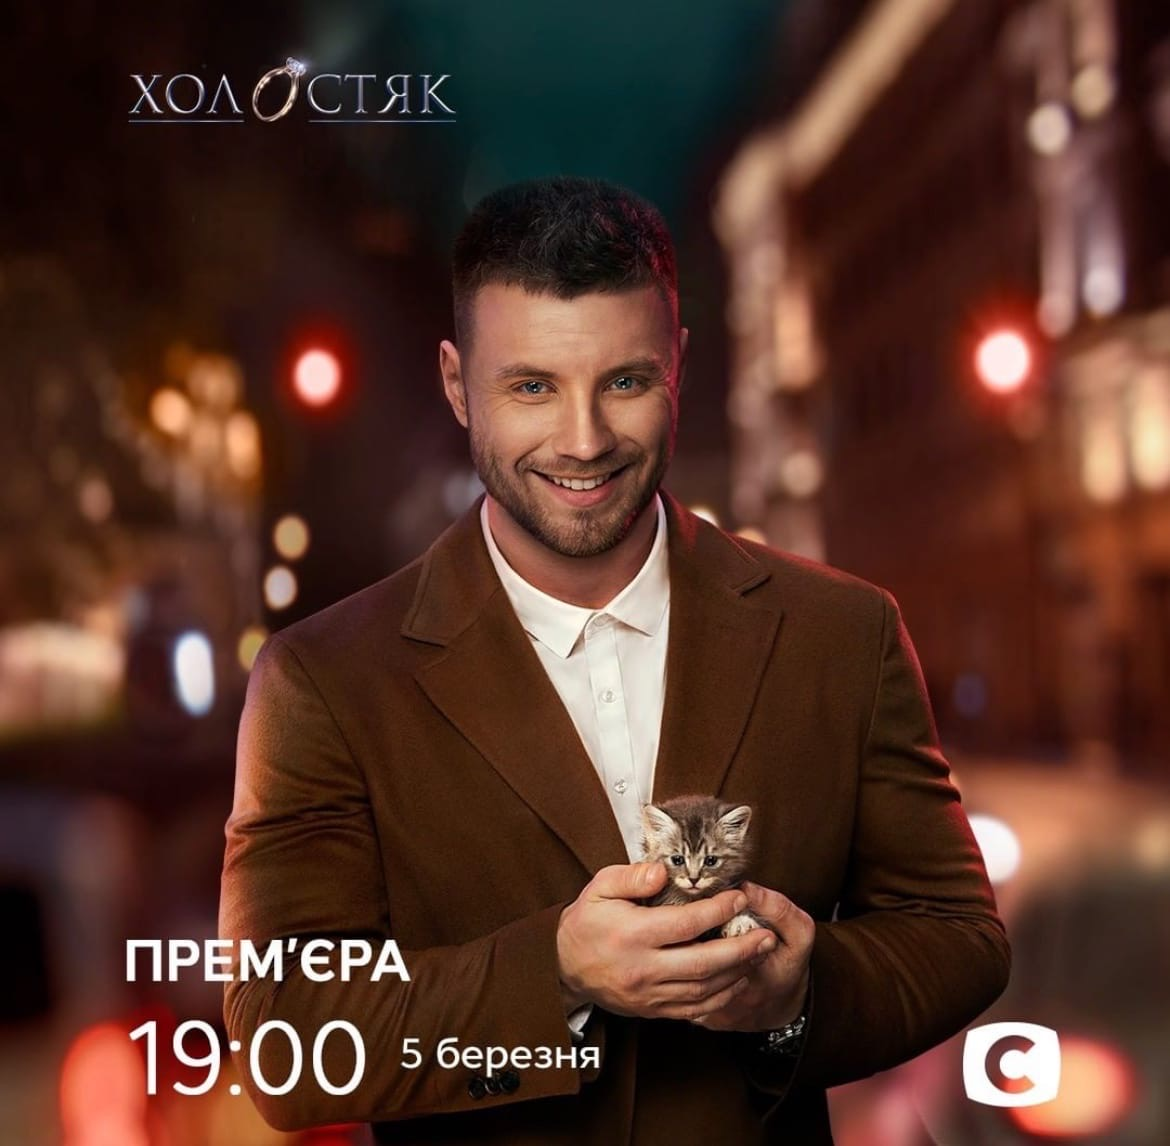 Bachelor Ukraine - Season 11 - Mikhail Zalivako - Episodes - Discussion - *Sleuthing Spoilers* M3nx5bYIRUQ